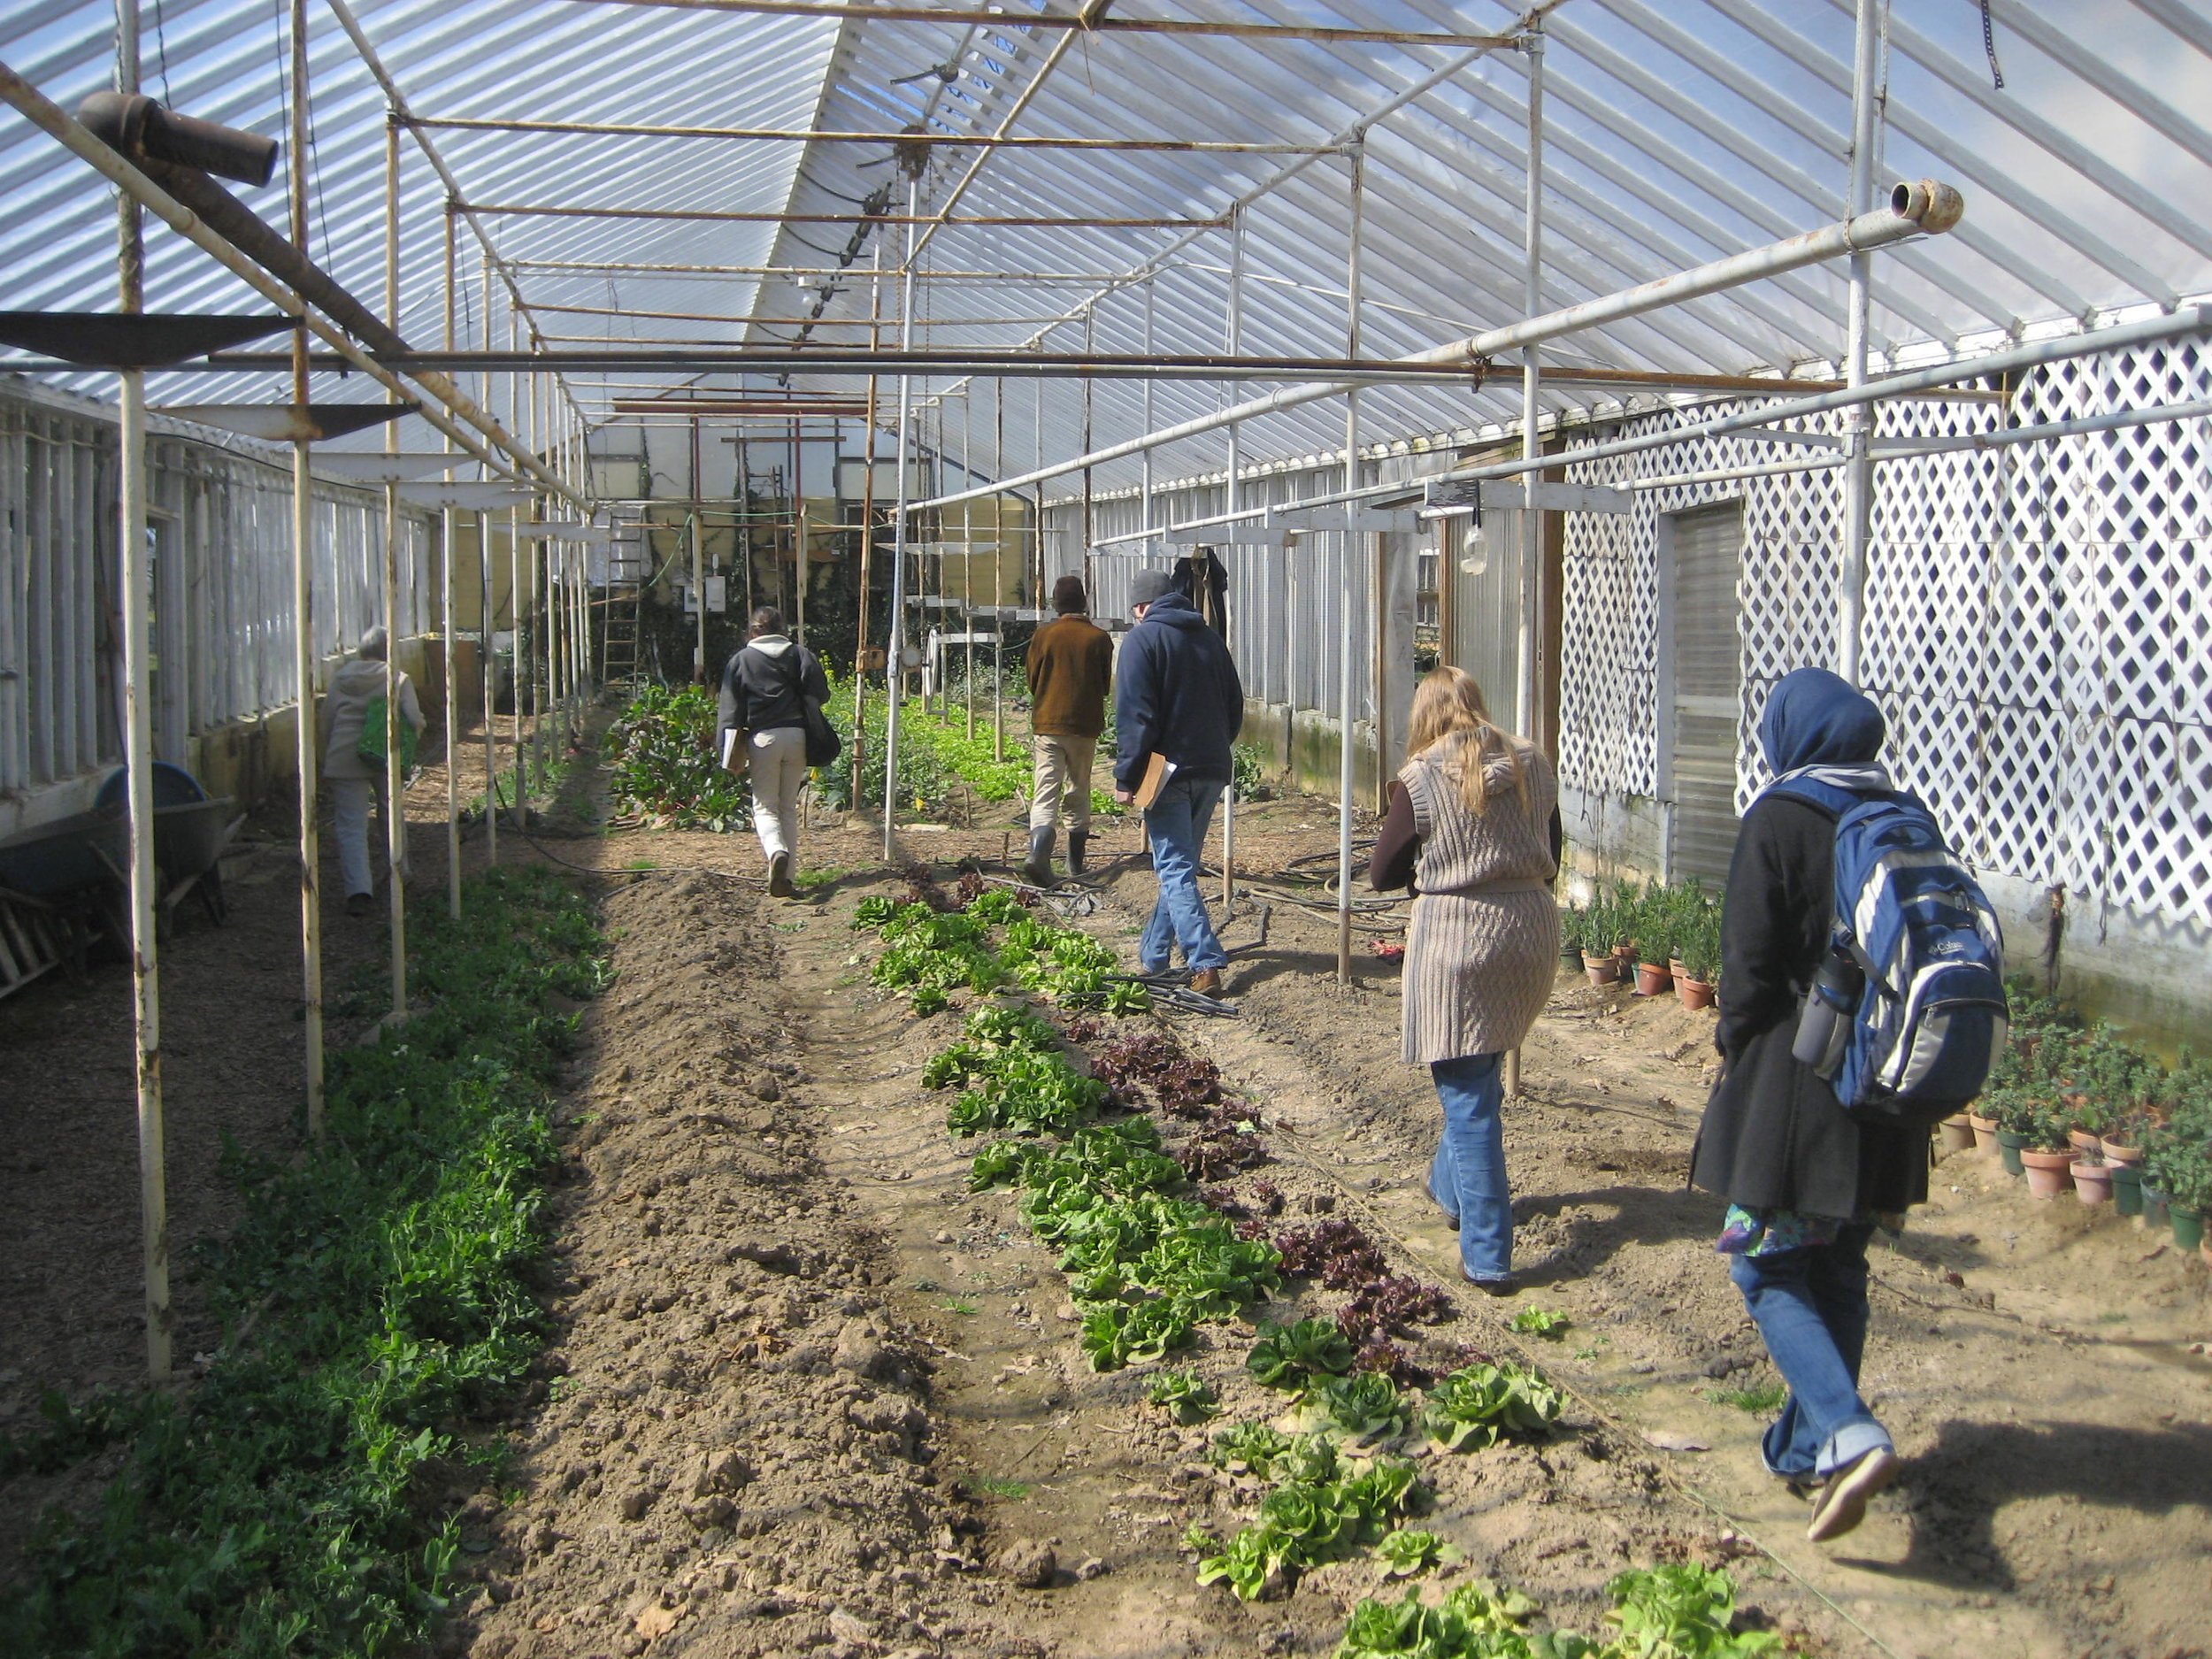 Winter Crops in the Enright Ridge CSA Greenhouse